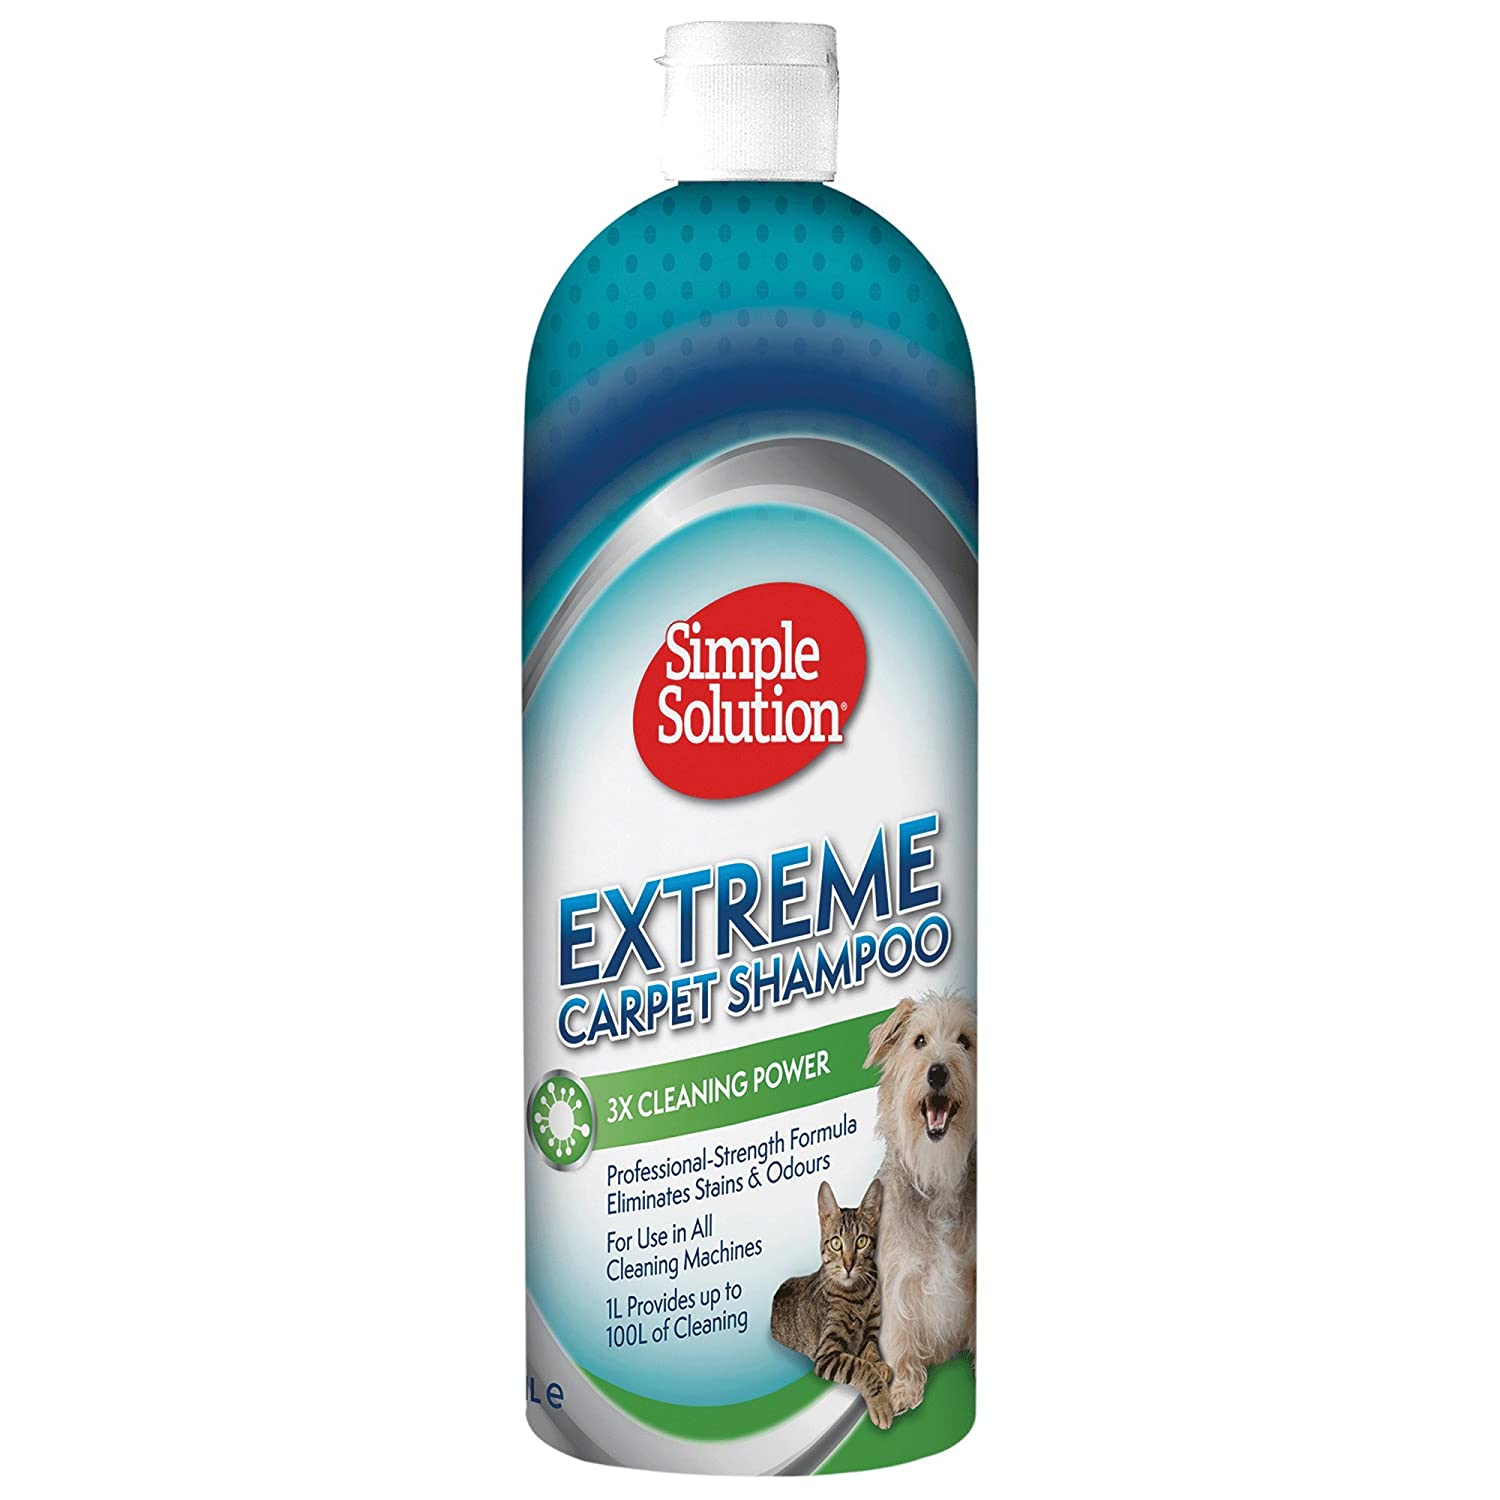 Simple Solution Extreme Carpet Shampoo For Pet Stains Odours 1 Best Breeding 40ml Litre Supplies